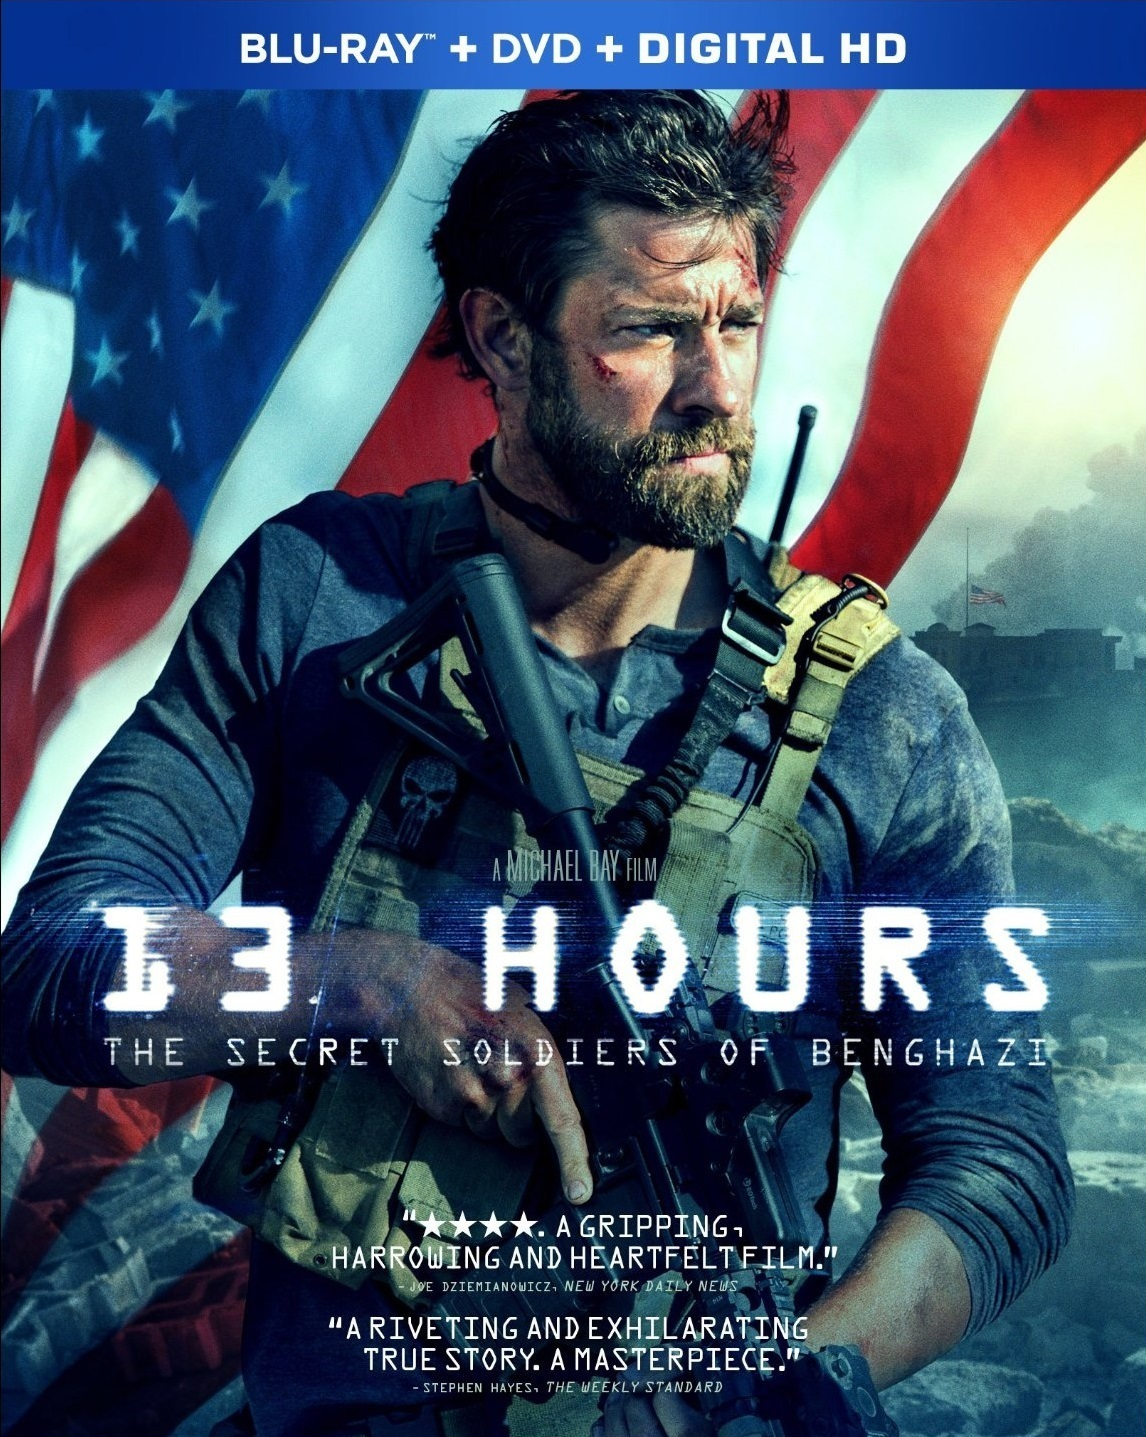 13 Hours: The Secret Soldiers of Benghazi (2016) poster image